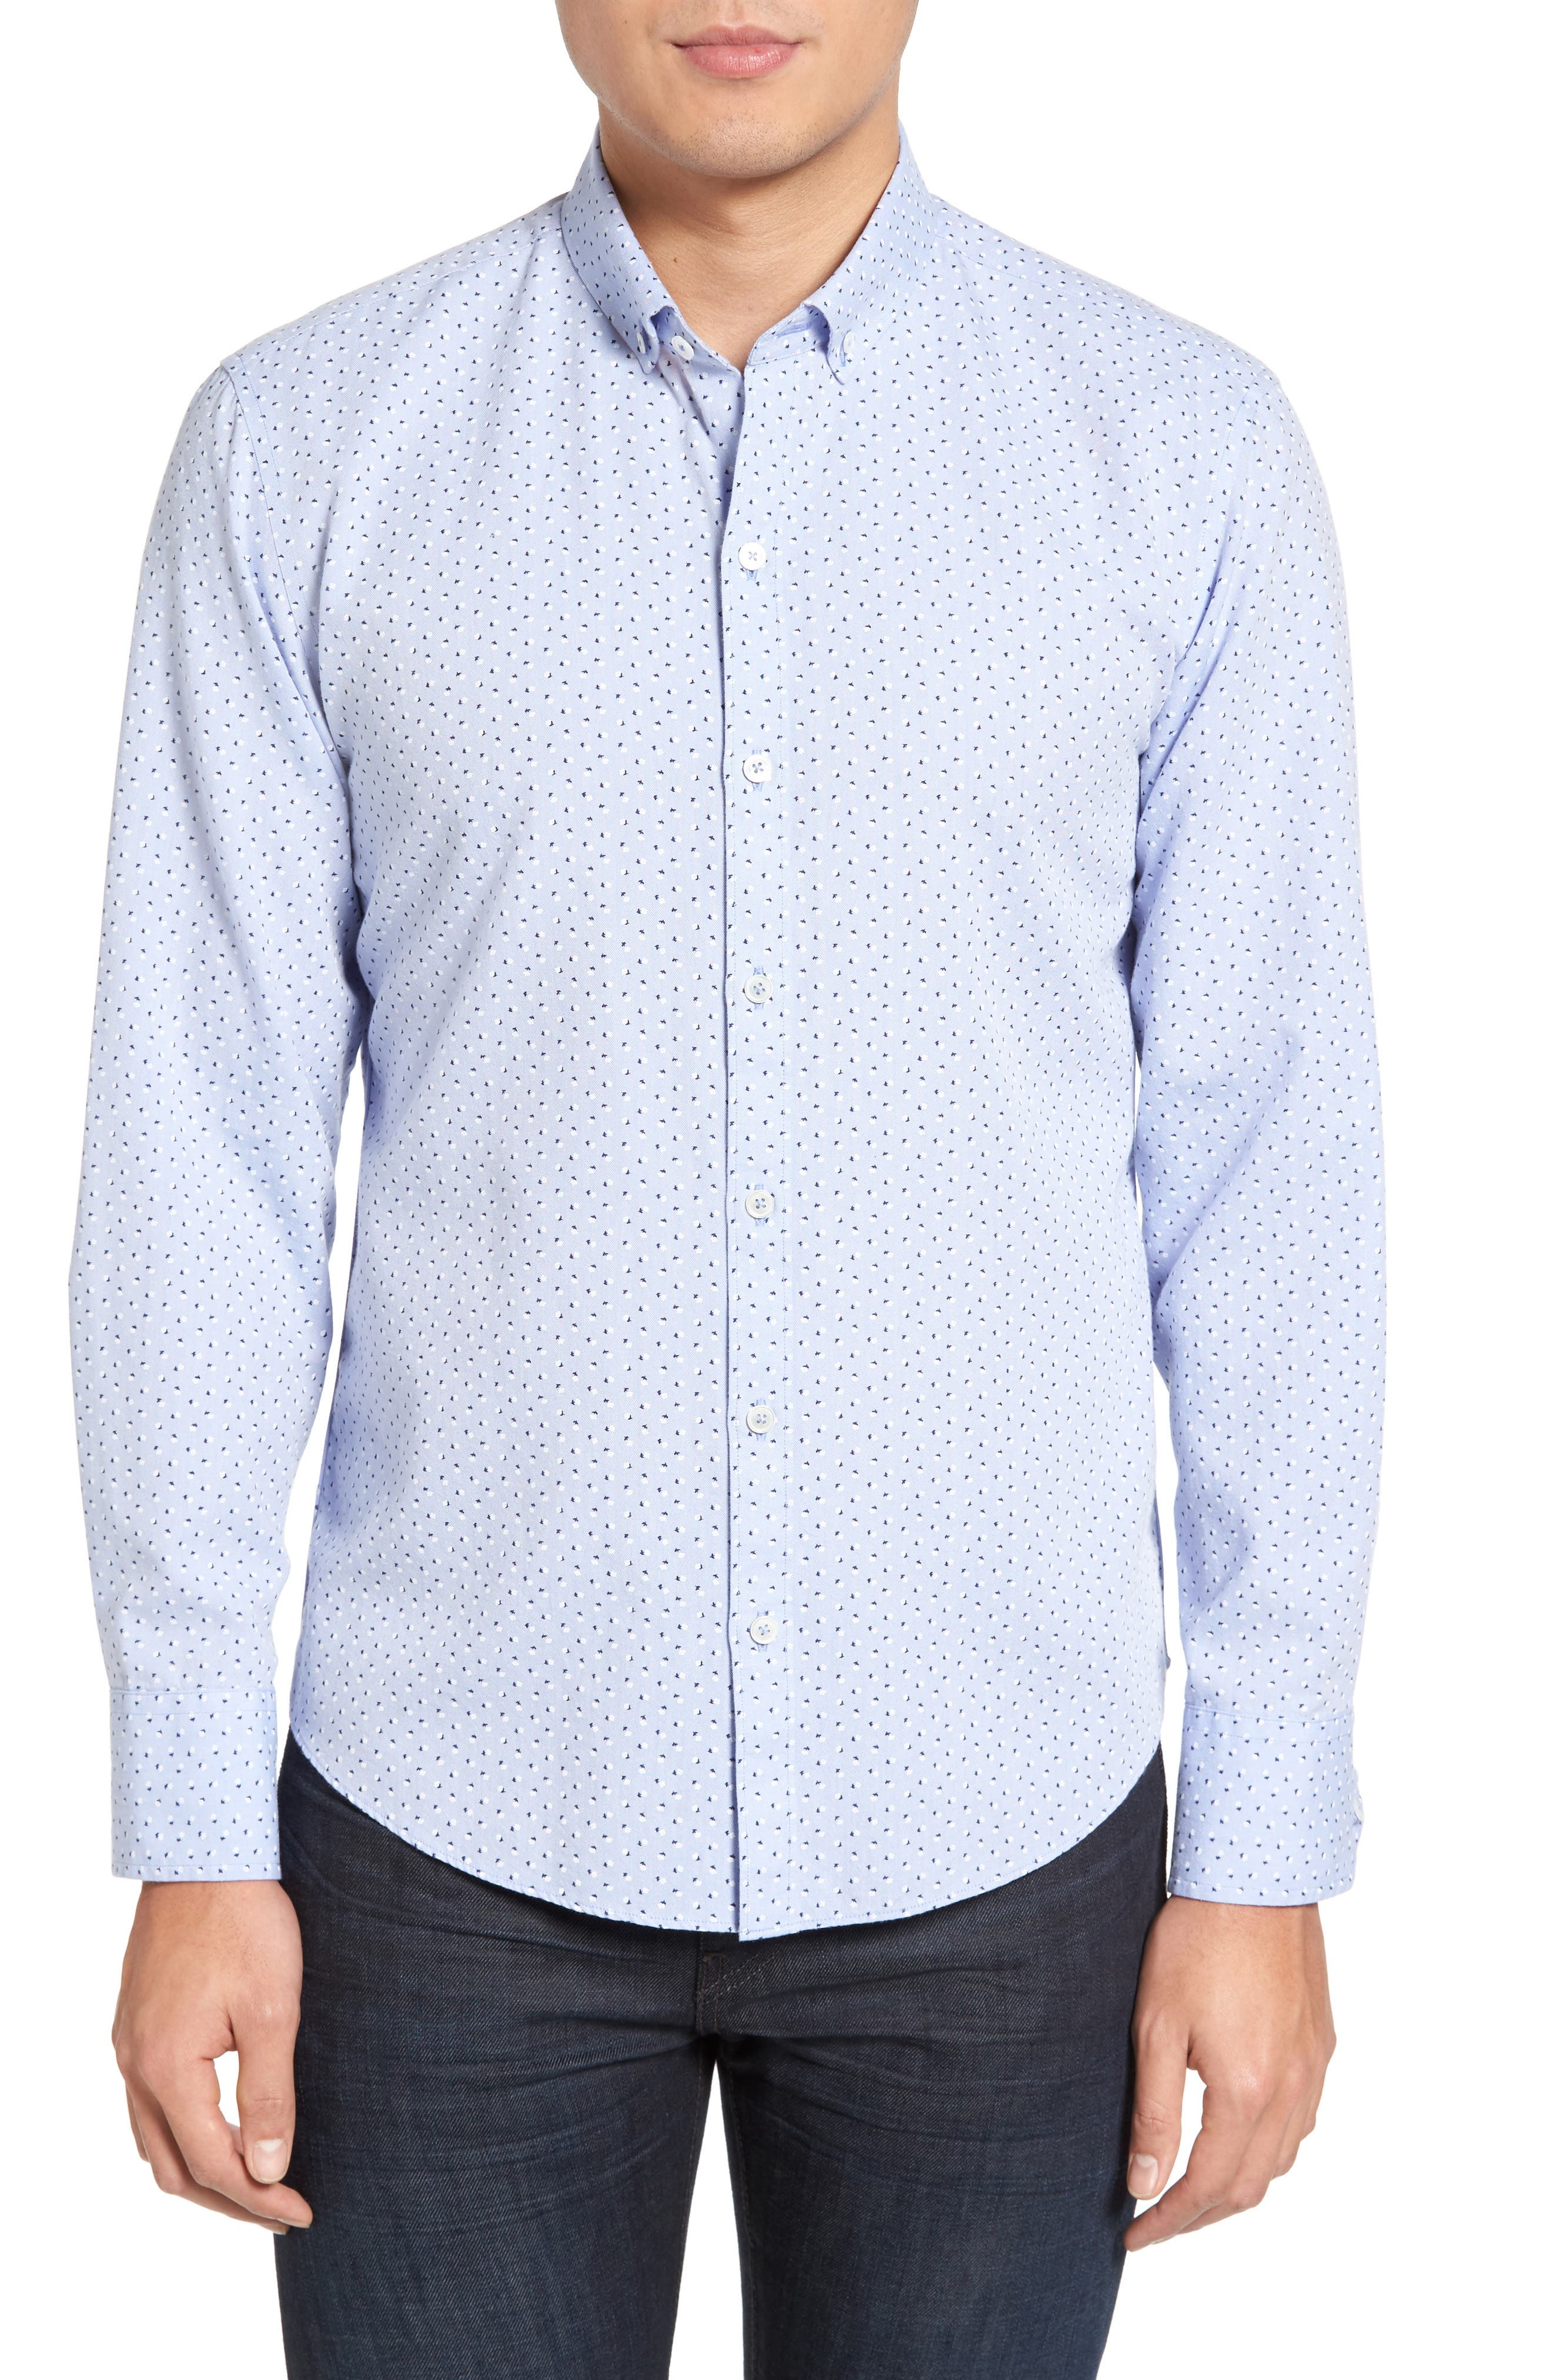 Alternate Image 1 Selected - Zachary Prell Benedict Print Sport Shirt